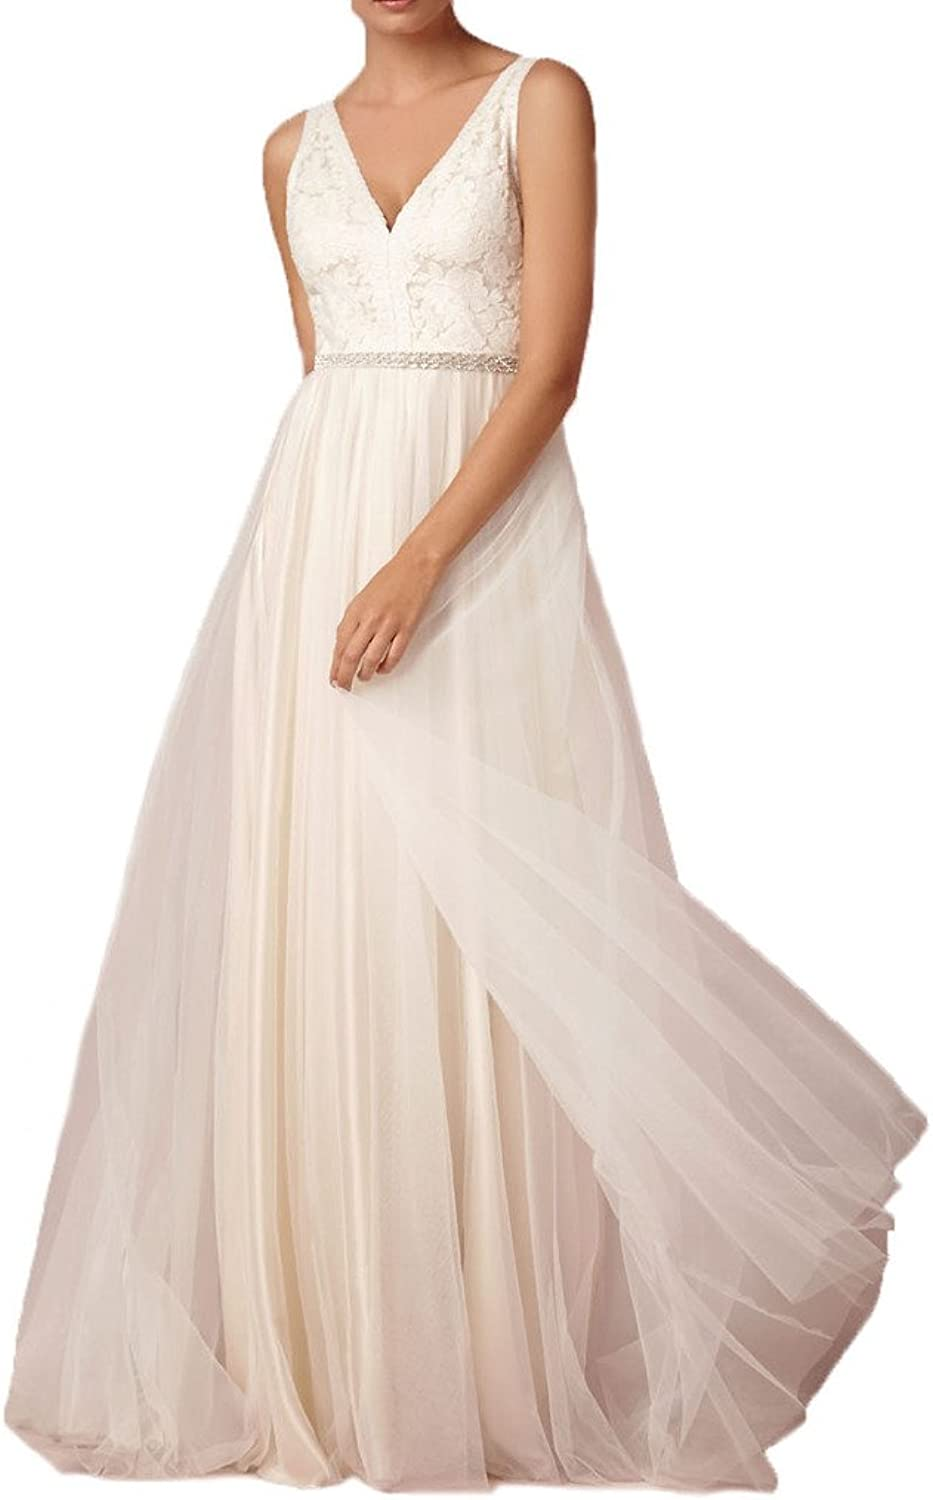 Cdress Lace Applique VNeck Sheer Beach Tulle Bridal Dresses Wedding Gowns